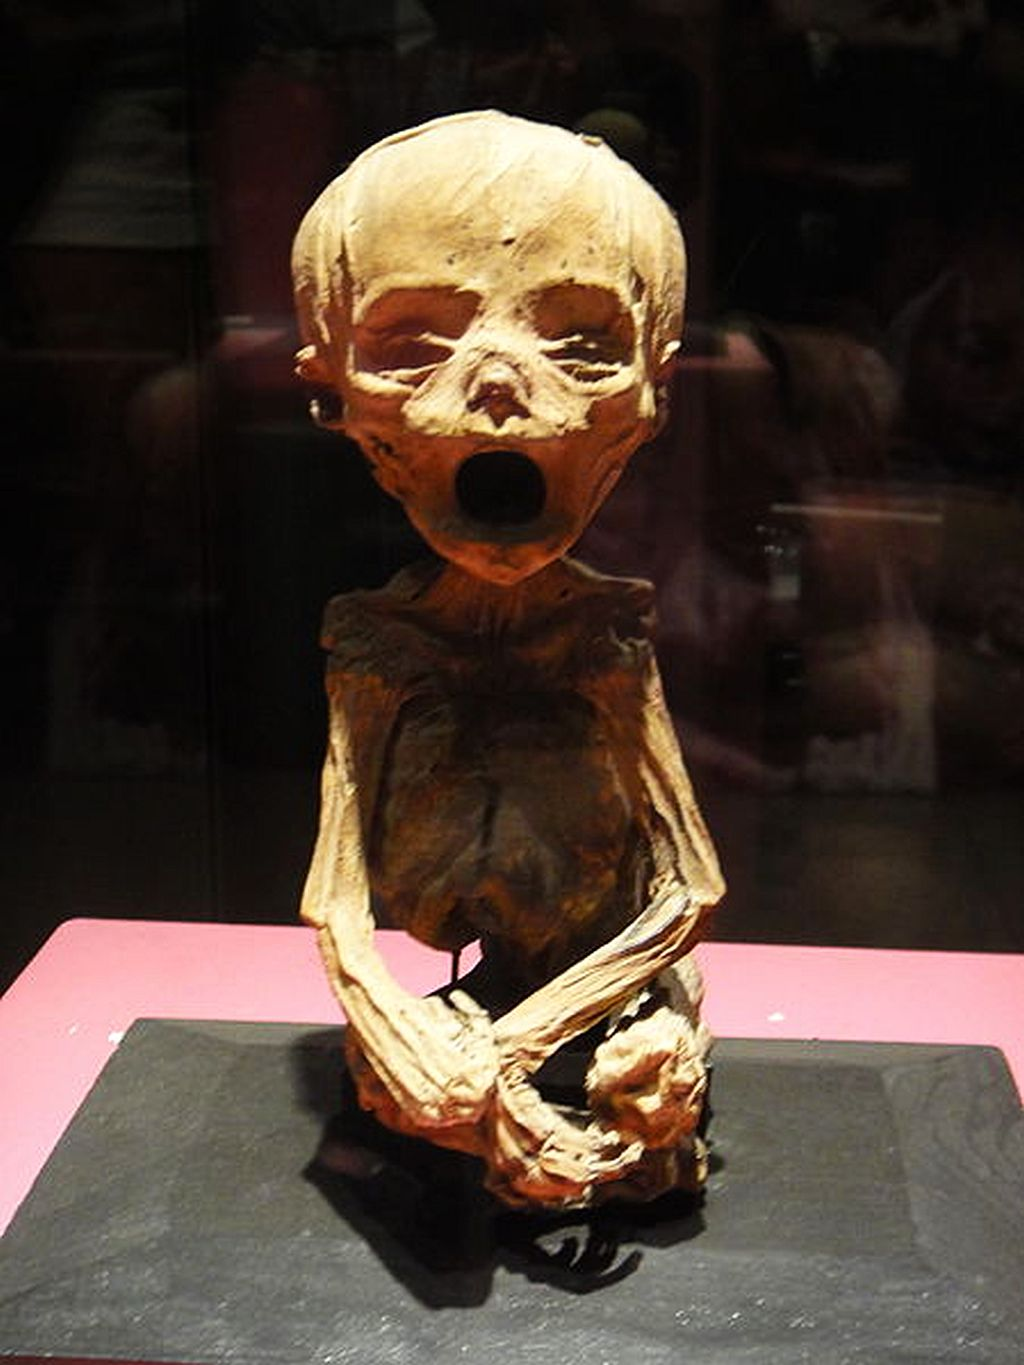 Mummy Museum in Mexico